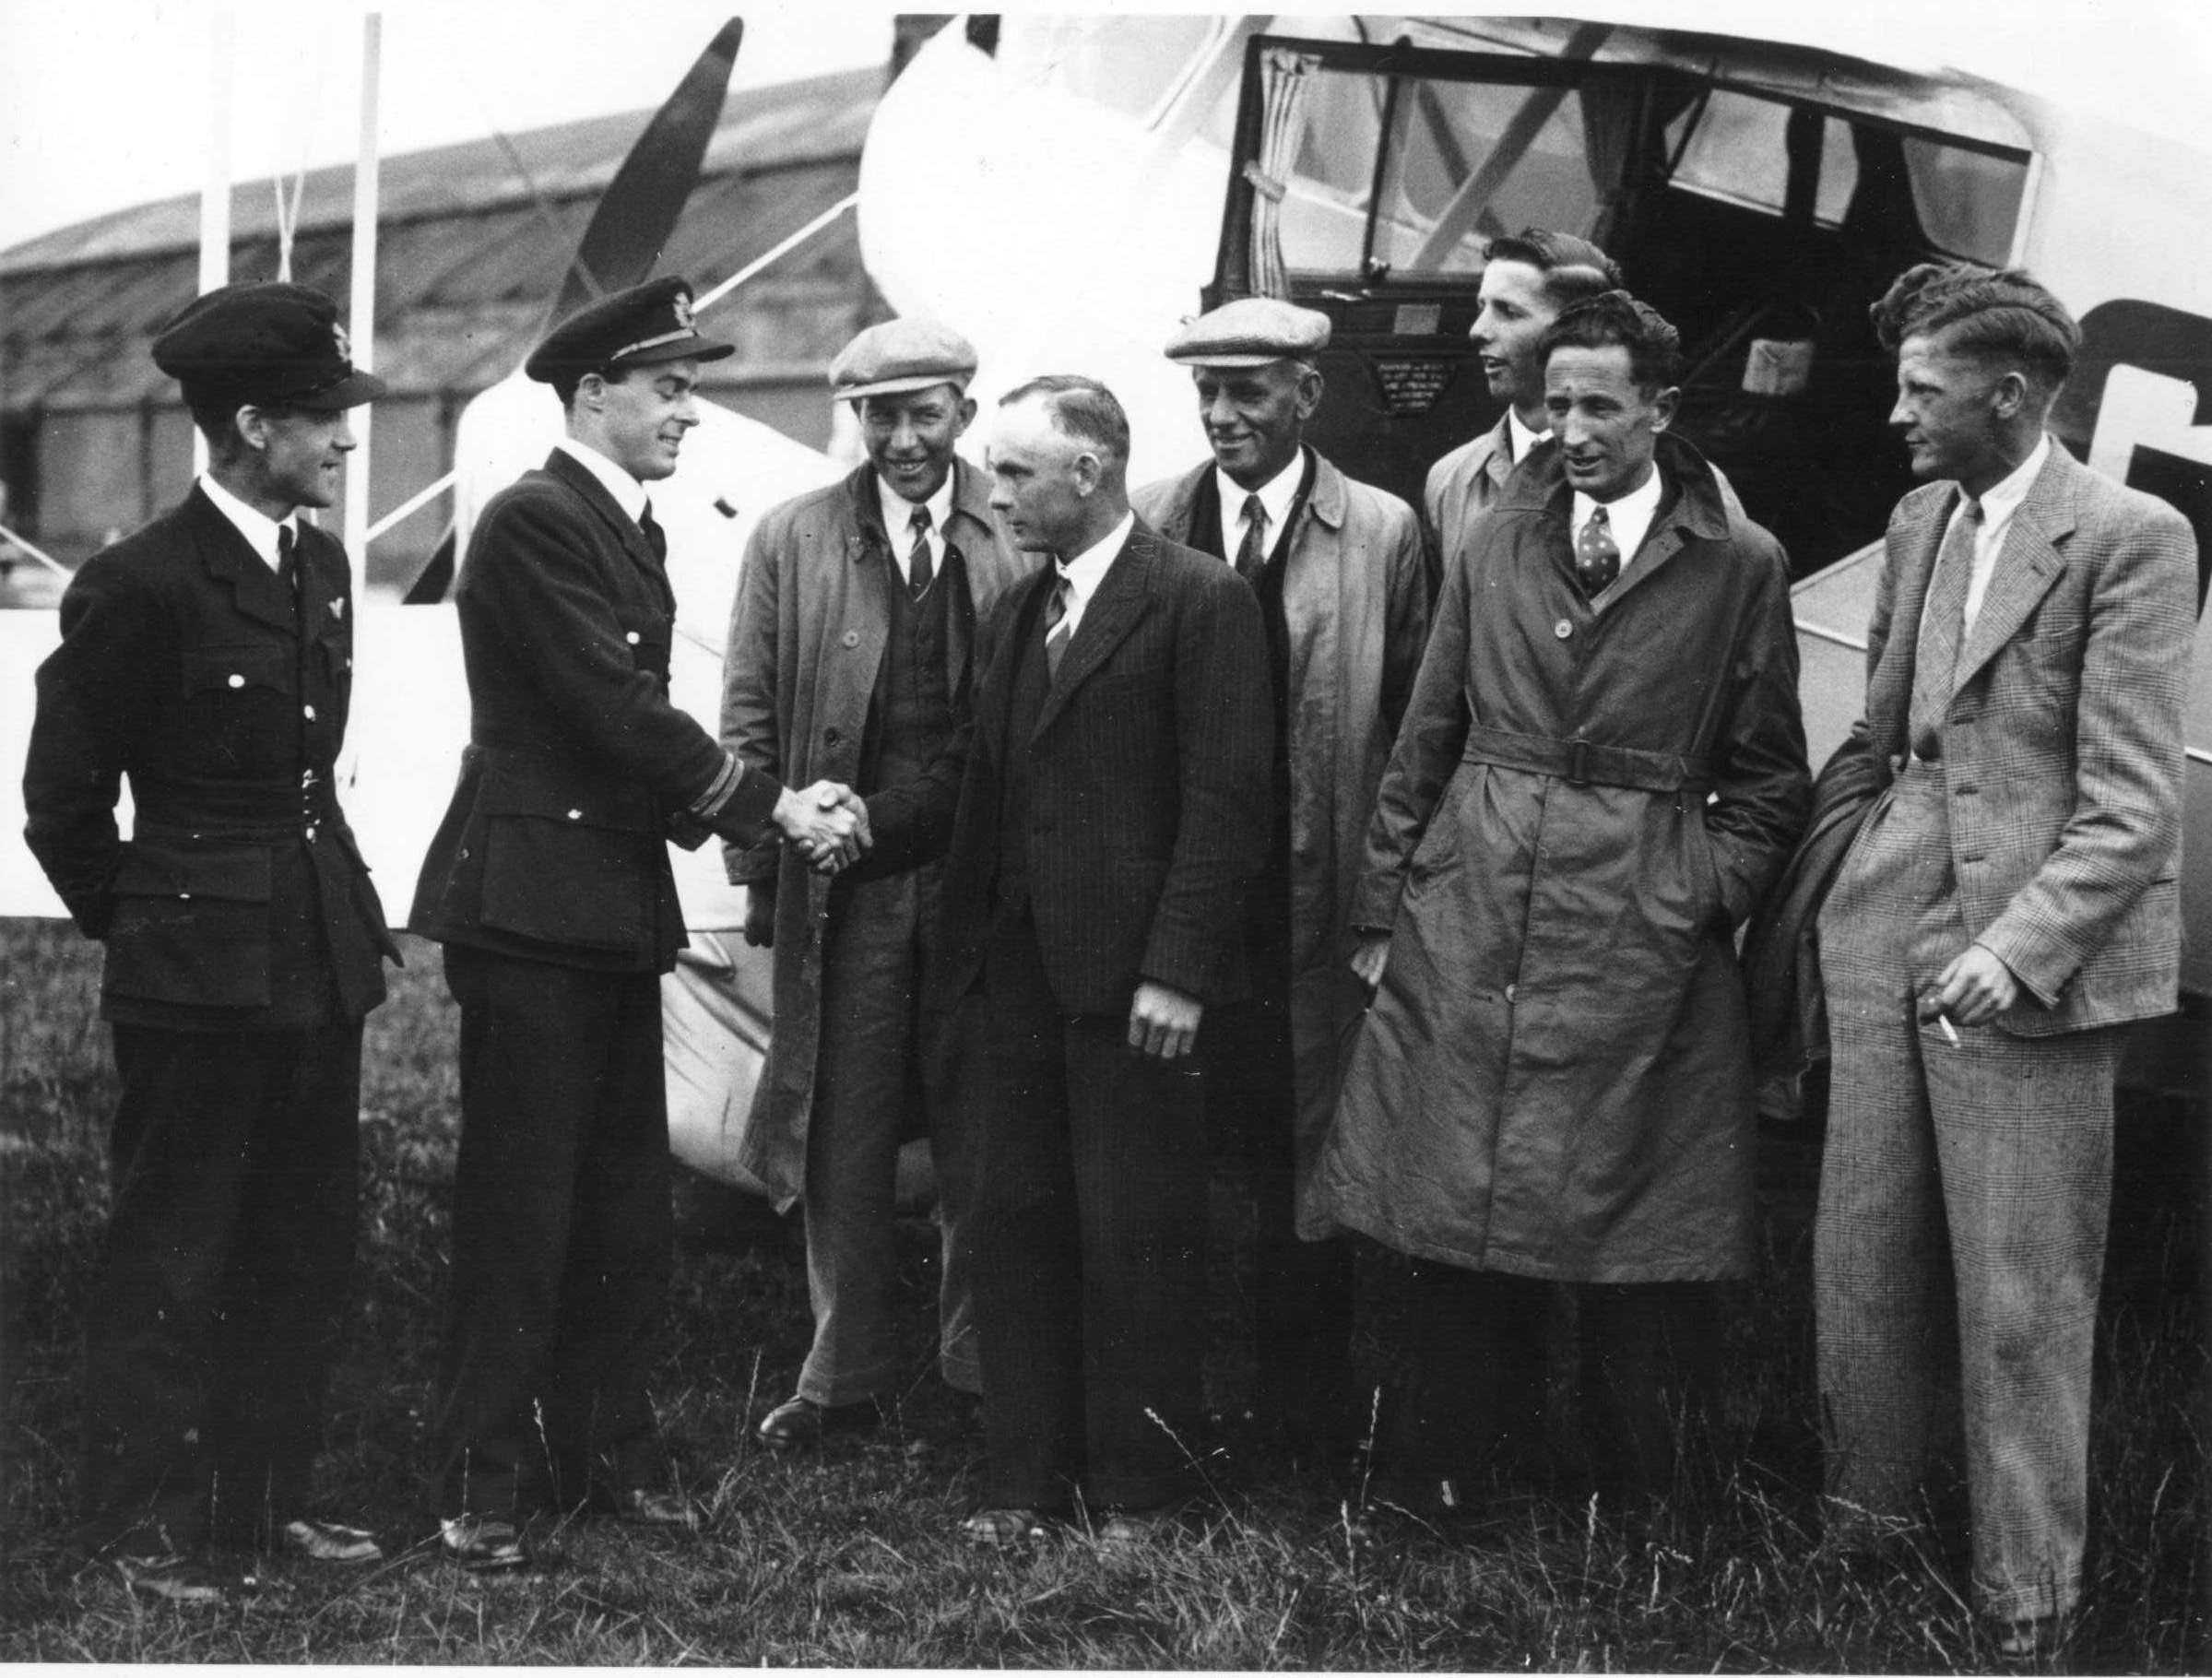 Two fligth crew with a group of local men in front of an aeroplane